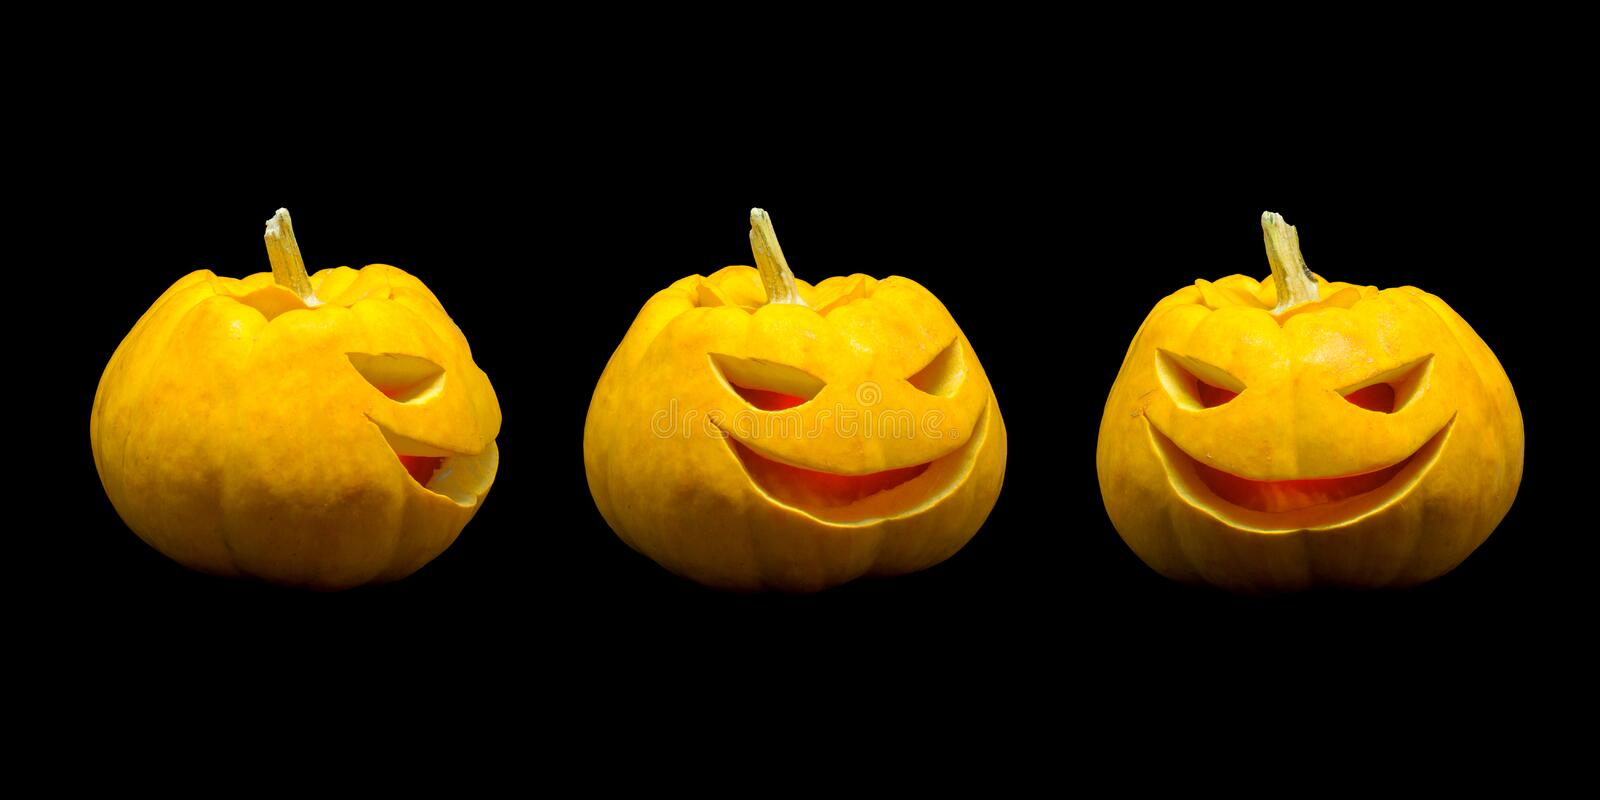 Jack o lantern pumpkin faces with lights on black background.  royalty free stock photos